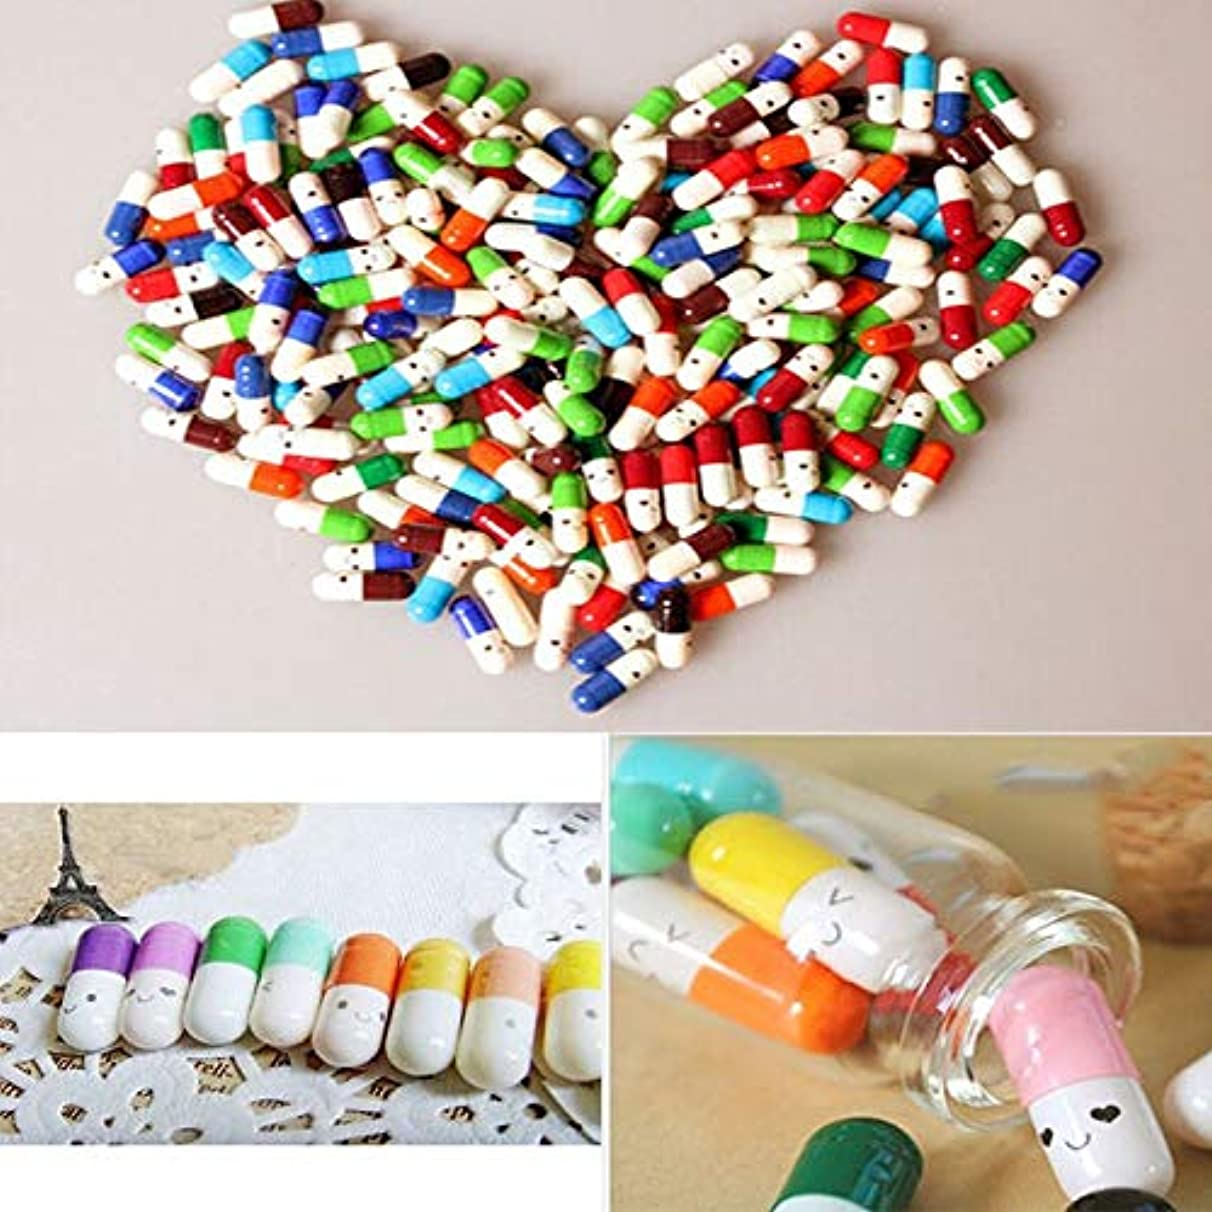 Gift Glass - 50pcs Message In A Bottle Capsule Letter Love Pill Letterhead Wish With Paper Scrip Storage Event - Toddlers Cars Party Hawaiian Movie Pack Stamps Drawstring Train Games Zero